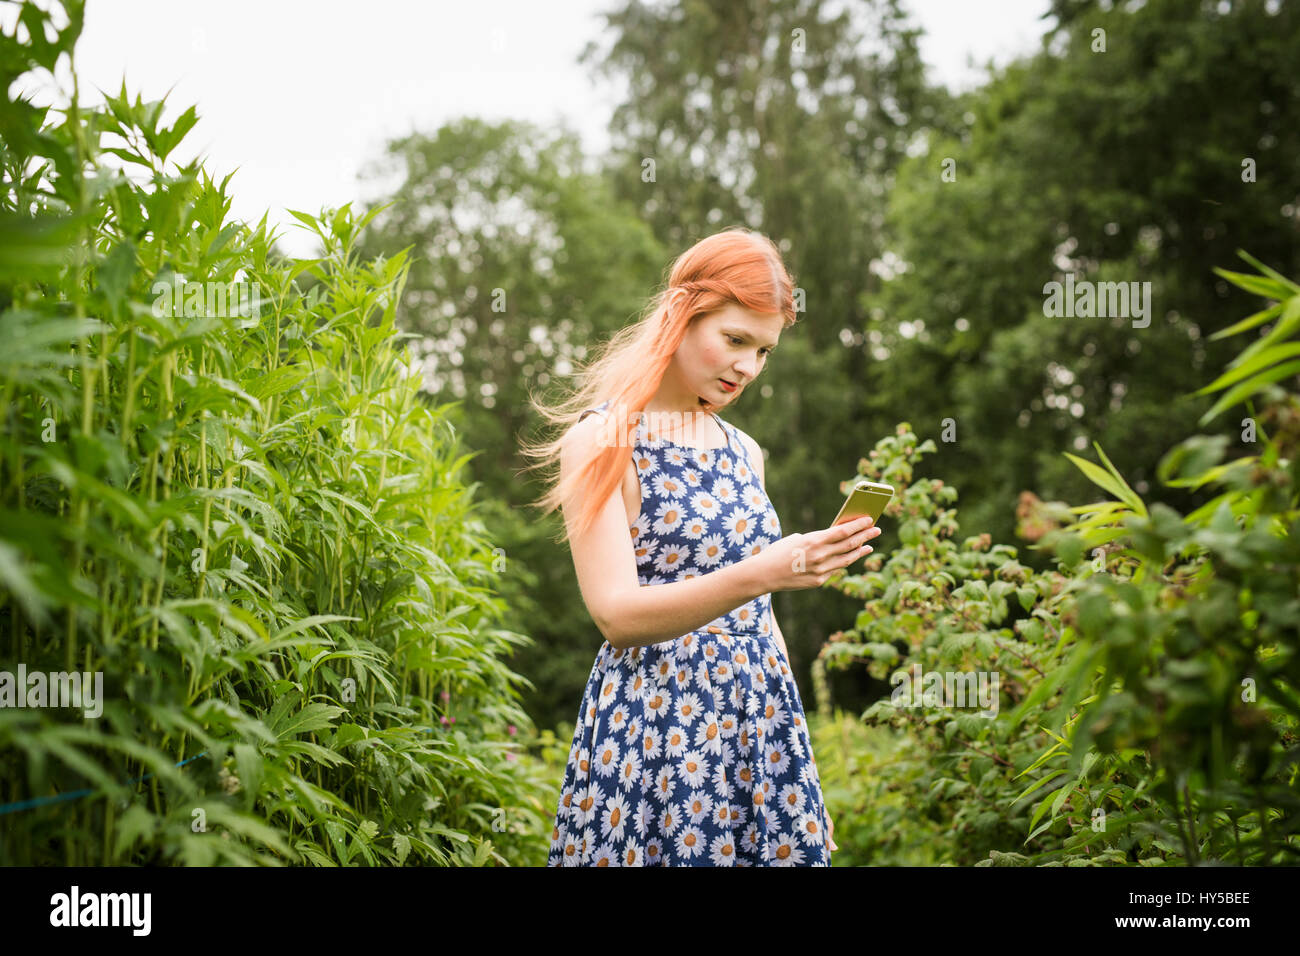 Finland, Pirkanmaa, Tampere, Woman photographing nature - Stock Image